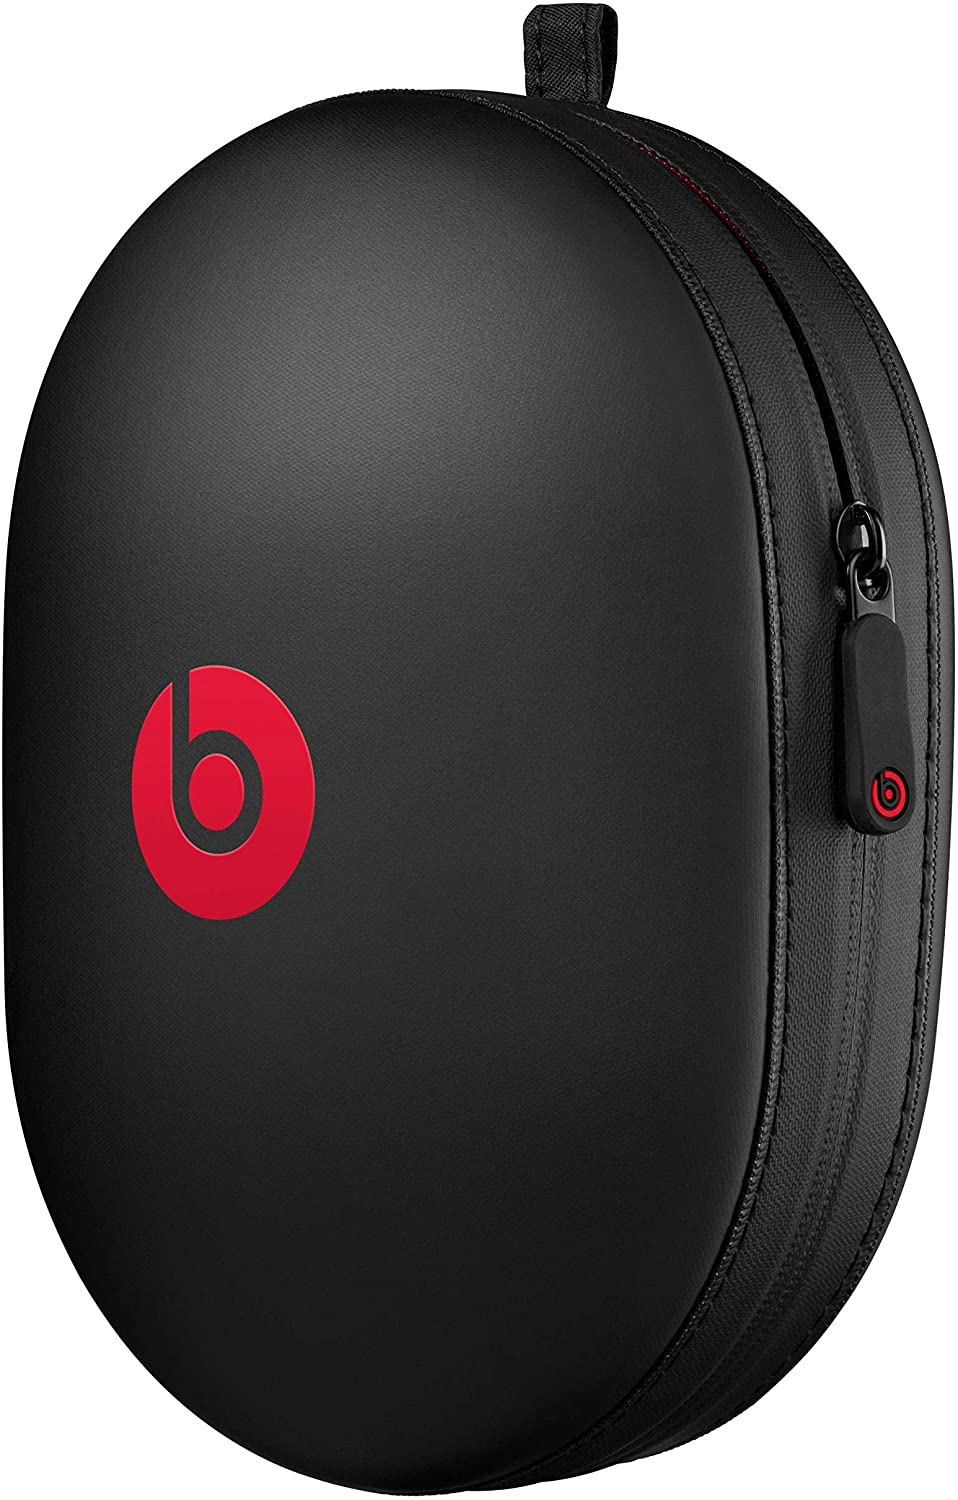 Beats Studio3 Wireless Noise Cancelling On-Ear Headphones – Apple W1 Headphone Chip, Class 1 Bluetooth, Active Noise Cancelling, 22 Hours Of Listening Time